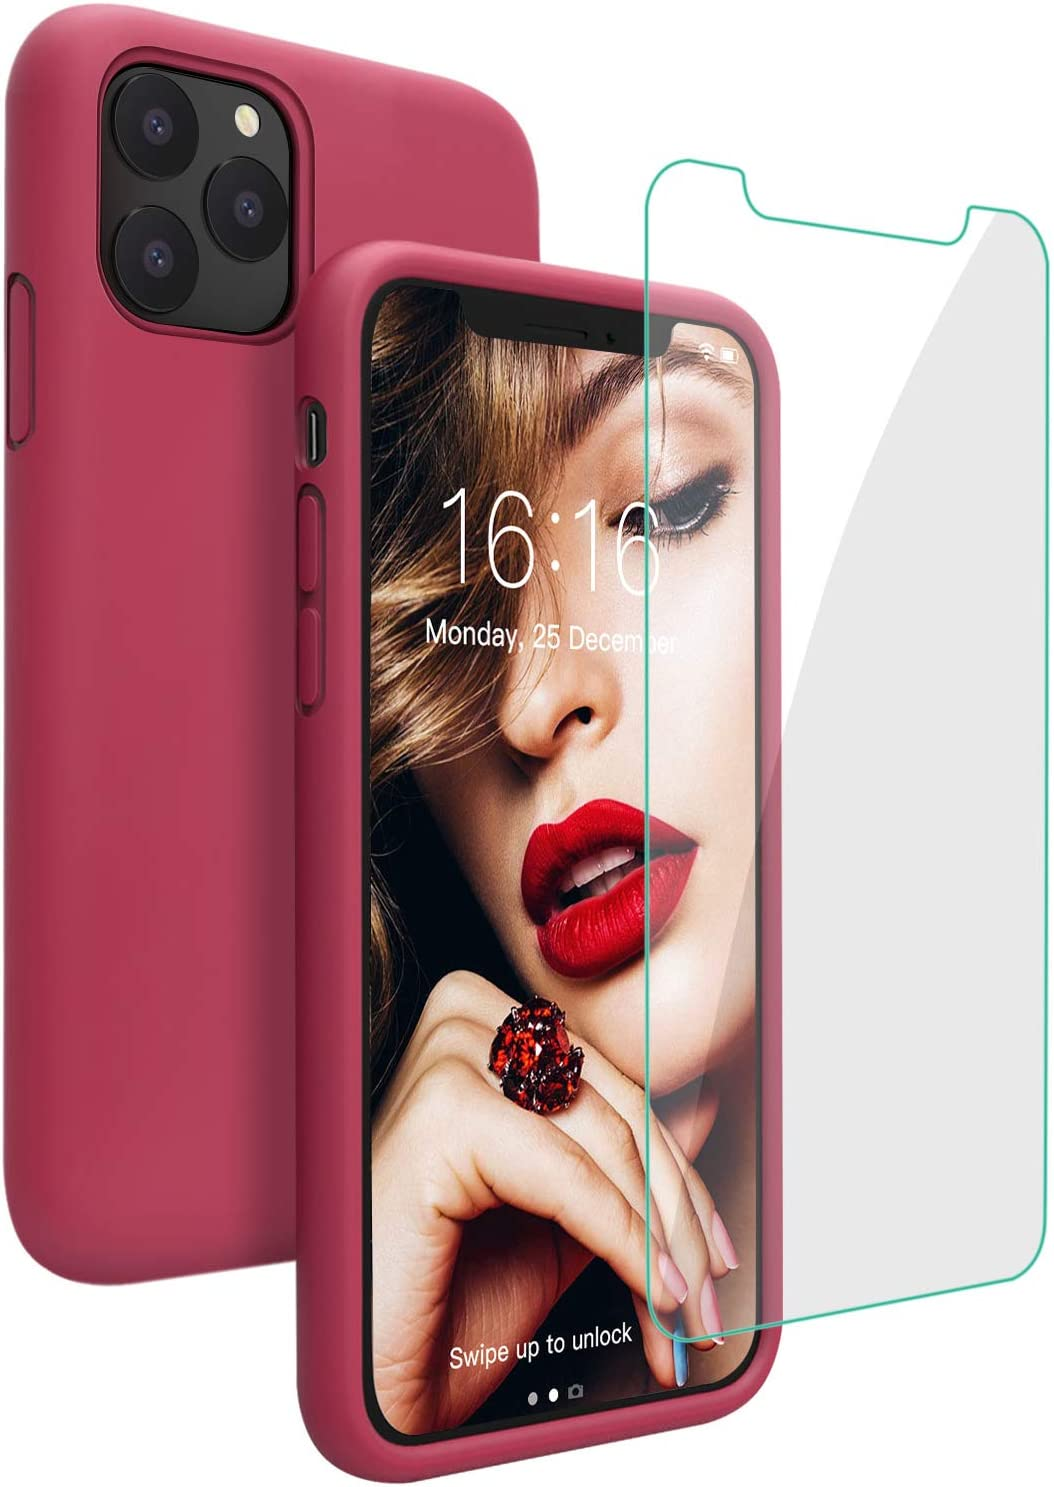 Case for iPhone 11 Pro Max, JASBON Liquid Silicone Phone Case with Tempered Glass, Soft Gel Rubber Bumper Anti-Slip Protective iPhone 11 Pro Max Case 6.5 inch for 11 Pro Max - Rose Red